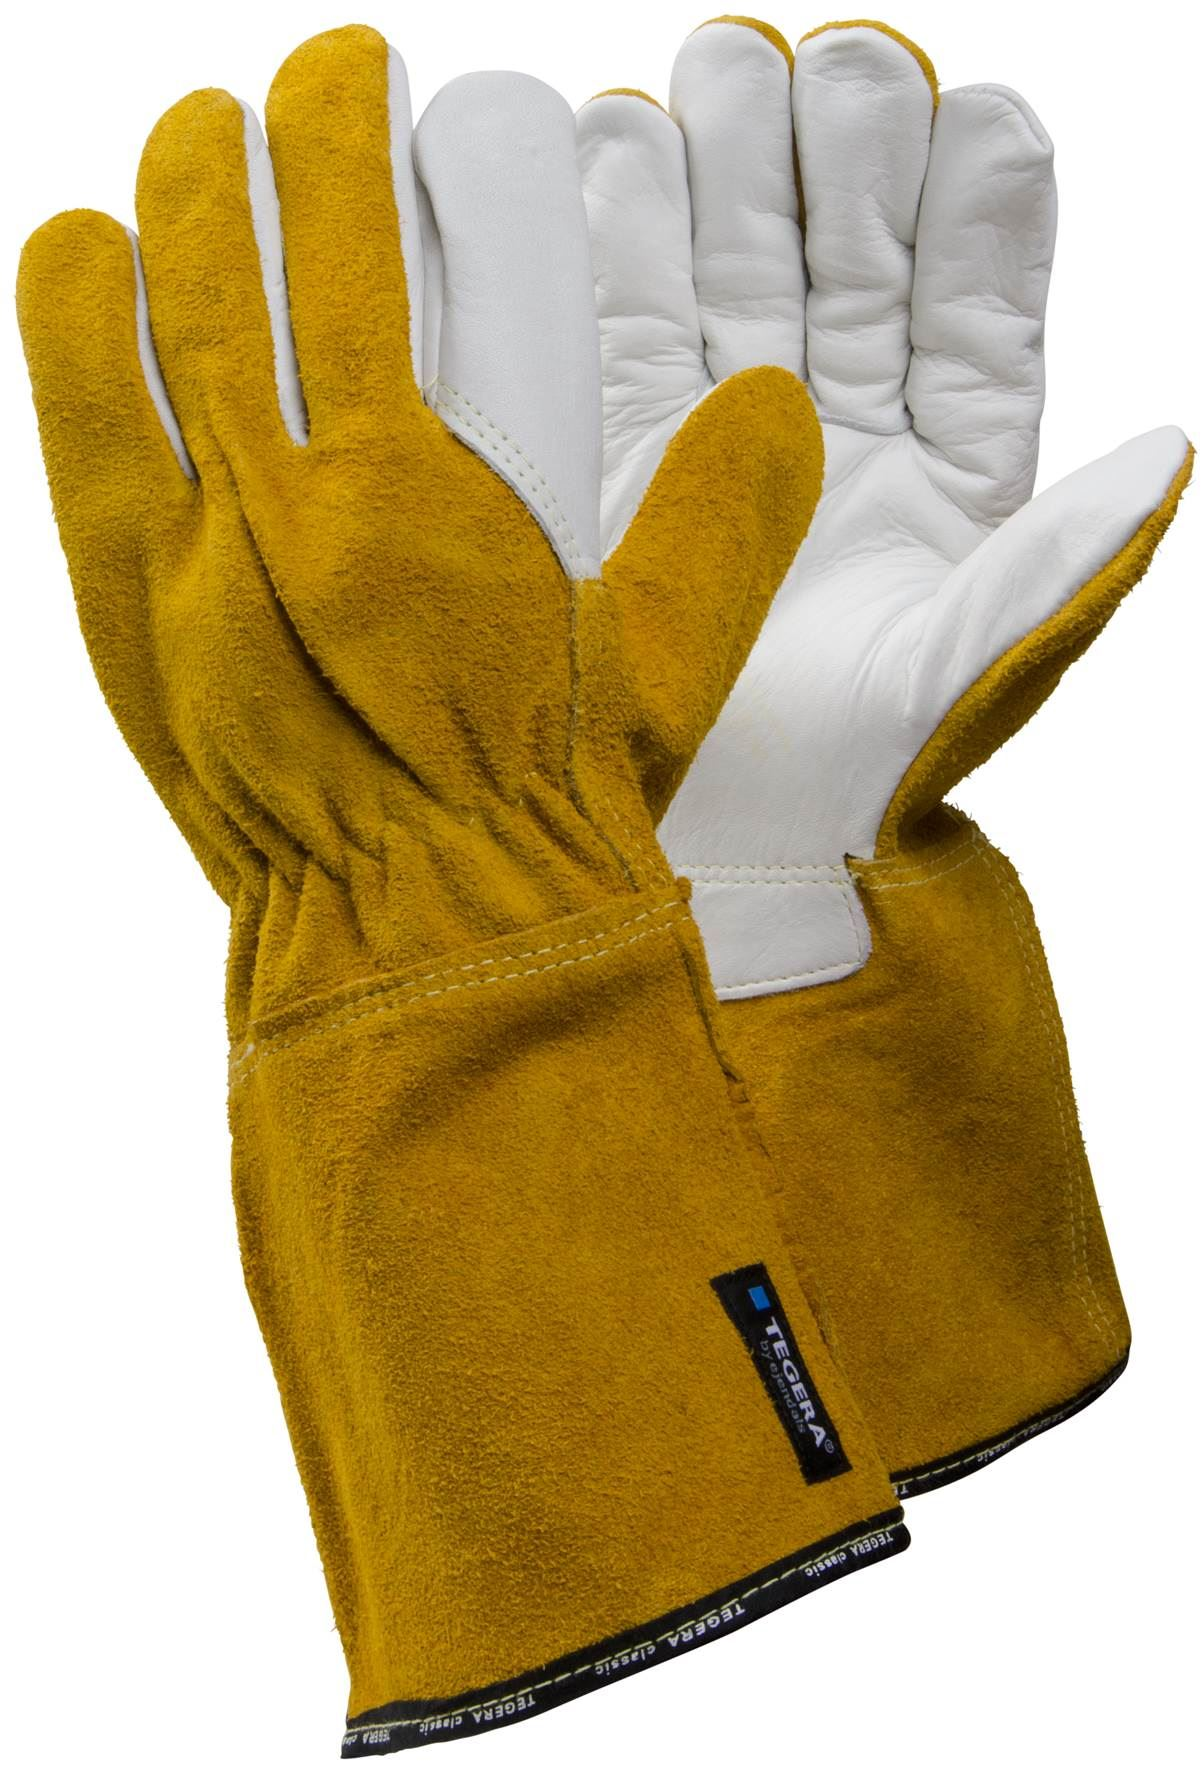 Leather work gloves ebay - Tegera Heat Resistant Leather Welding Work Gloves Gauntlets